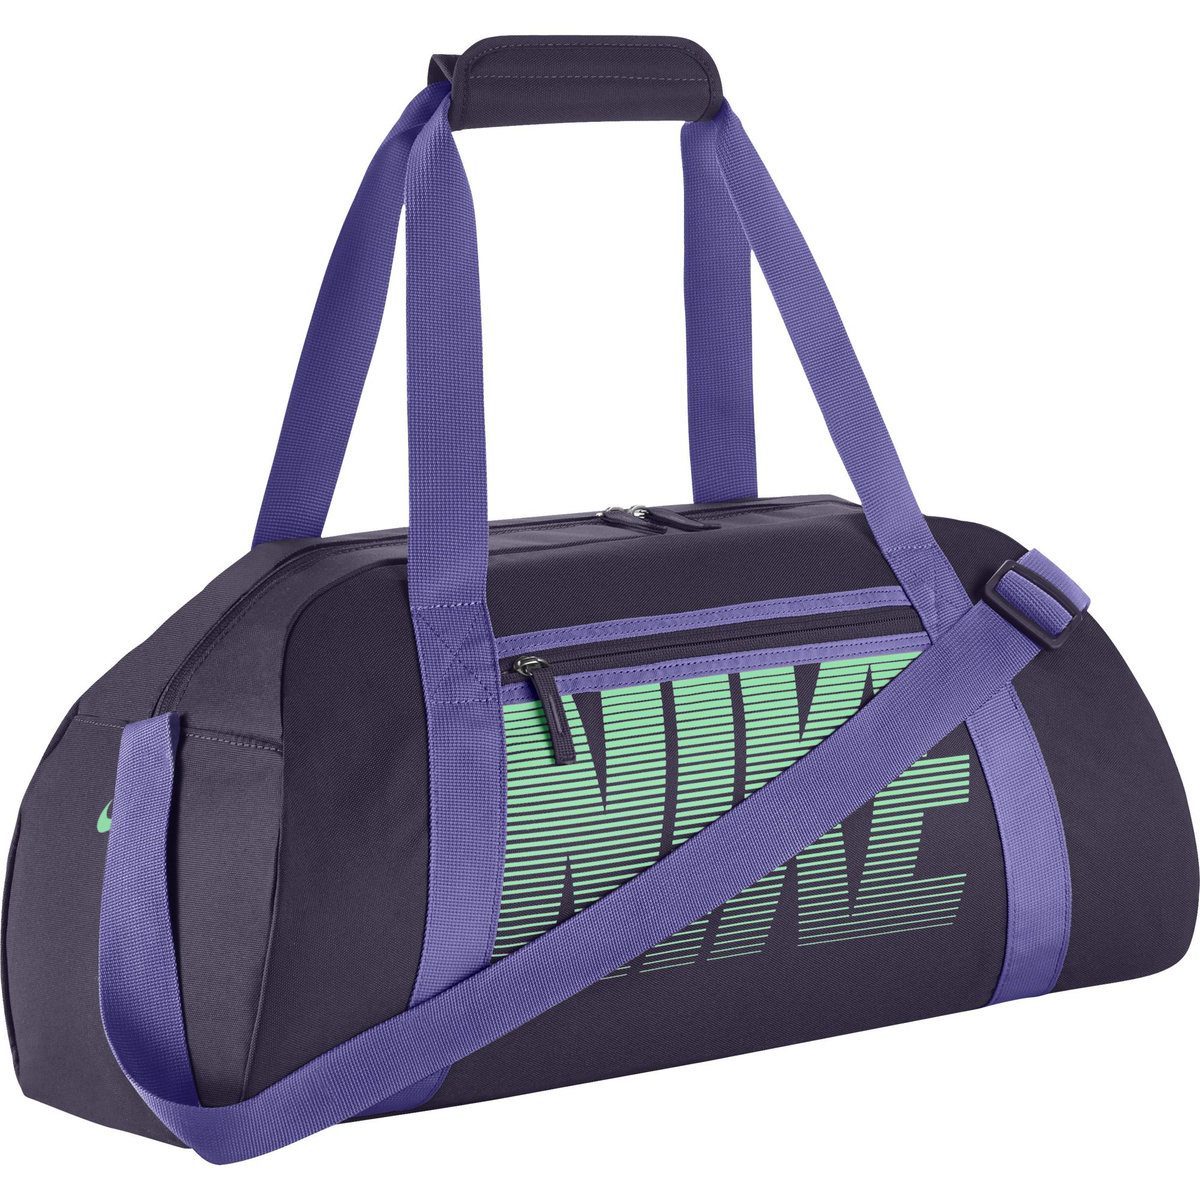 4ec99172 Find club team duffel l bag g sport max. Shop every store on the ...